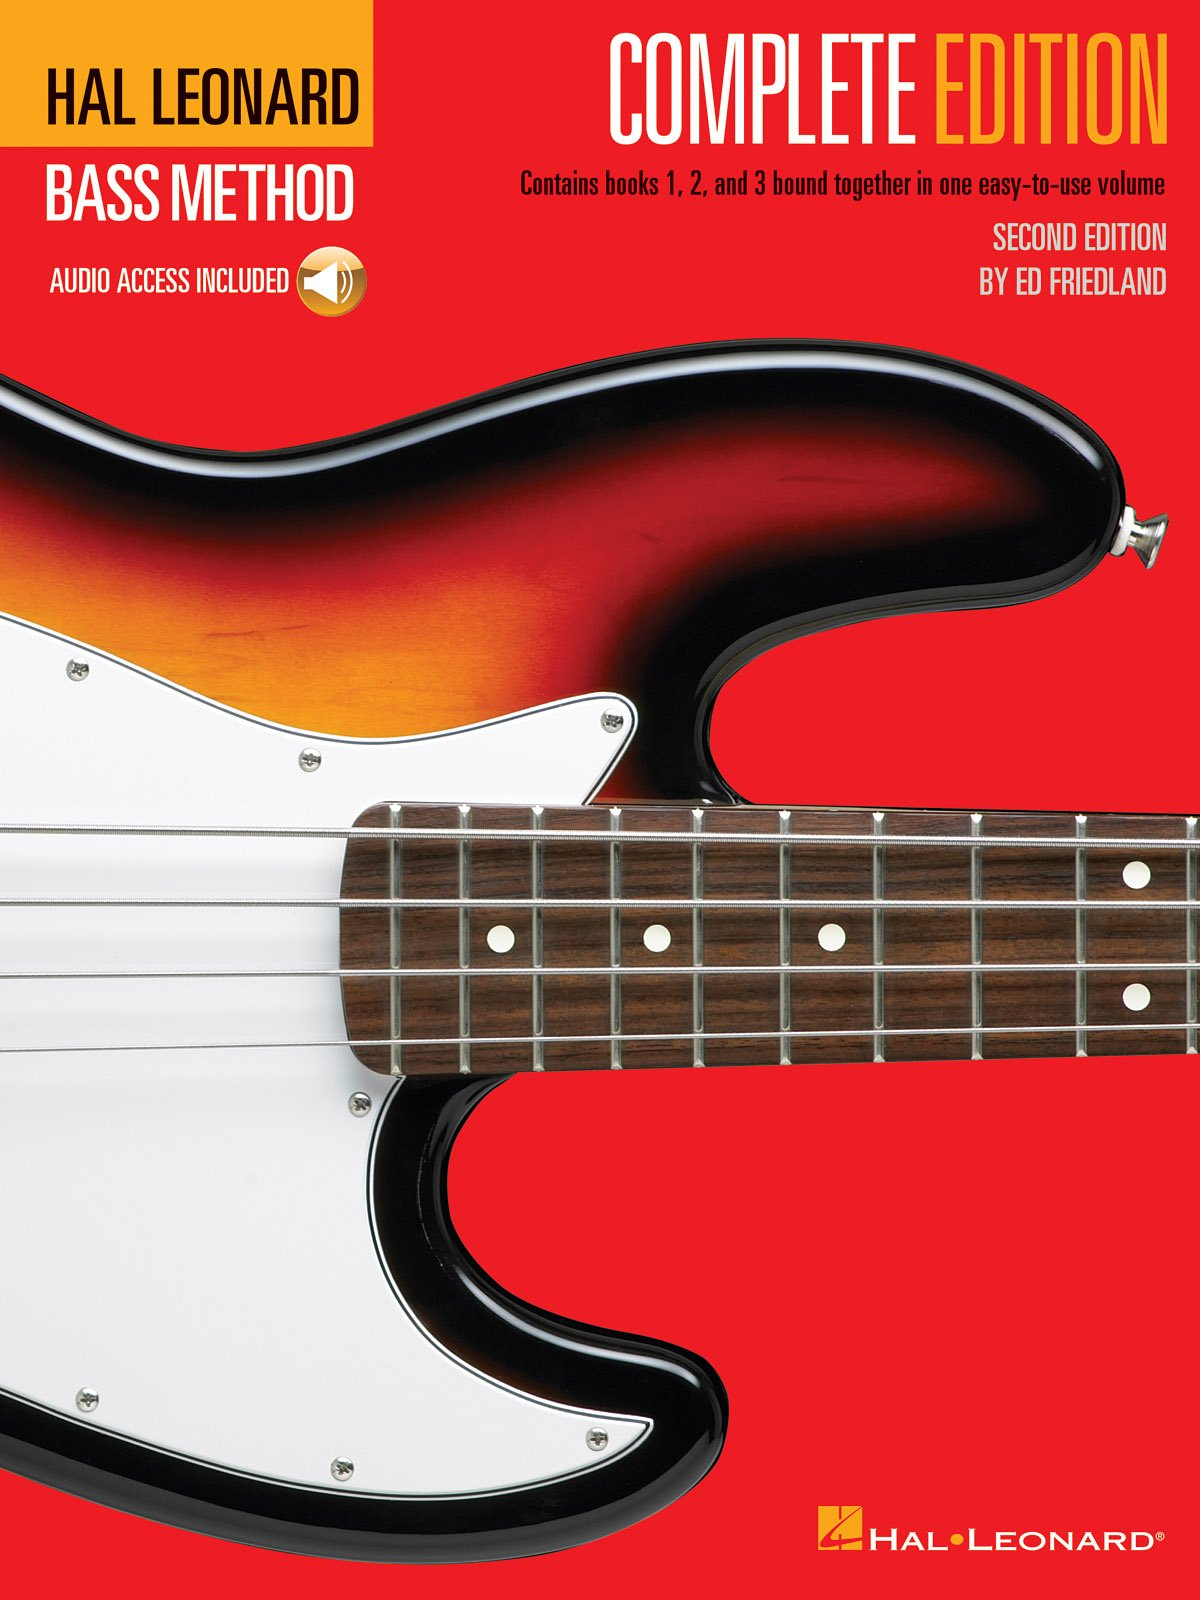 Hal Leonard Bass Method - Complete Edition: Books 1, 2 and 3 Bound Together in One Easy-to-Use Volume! by Hal Leonard